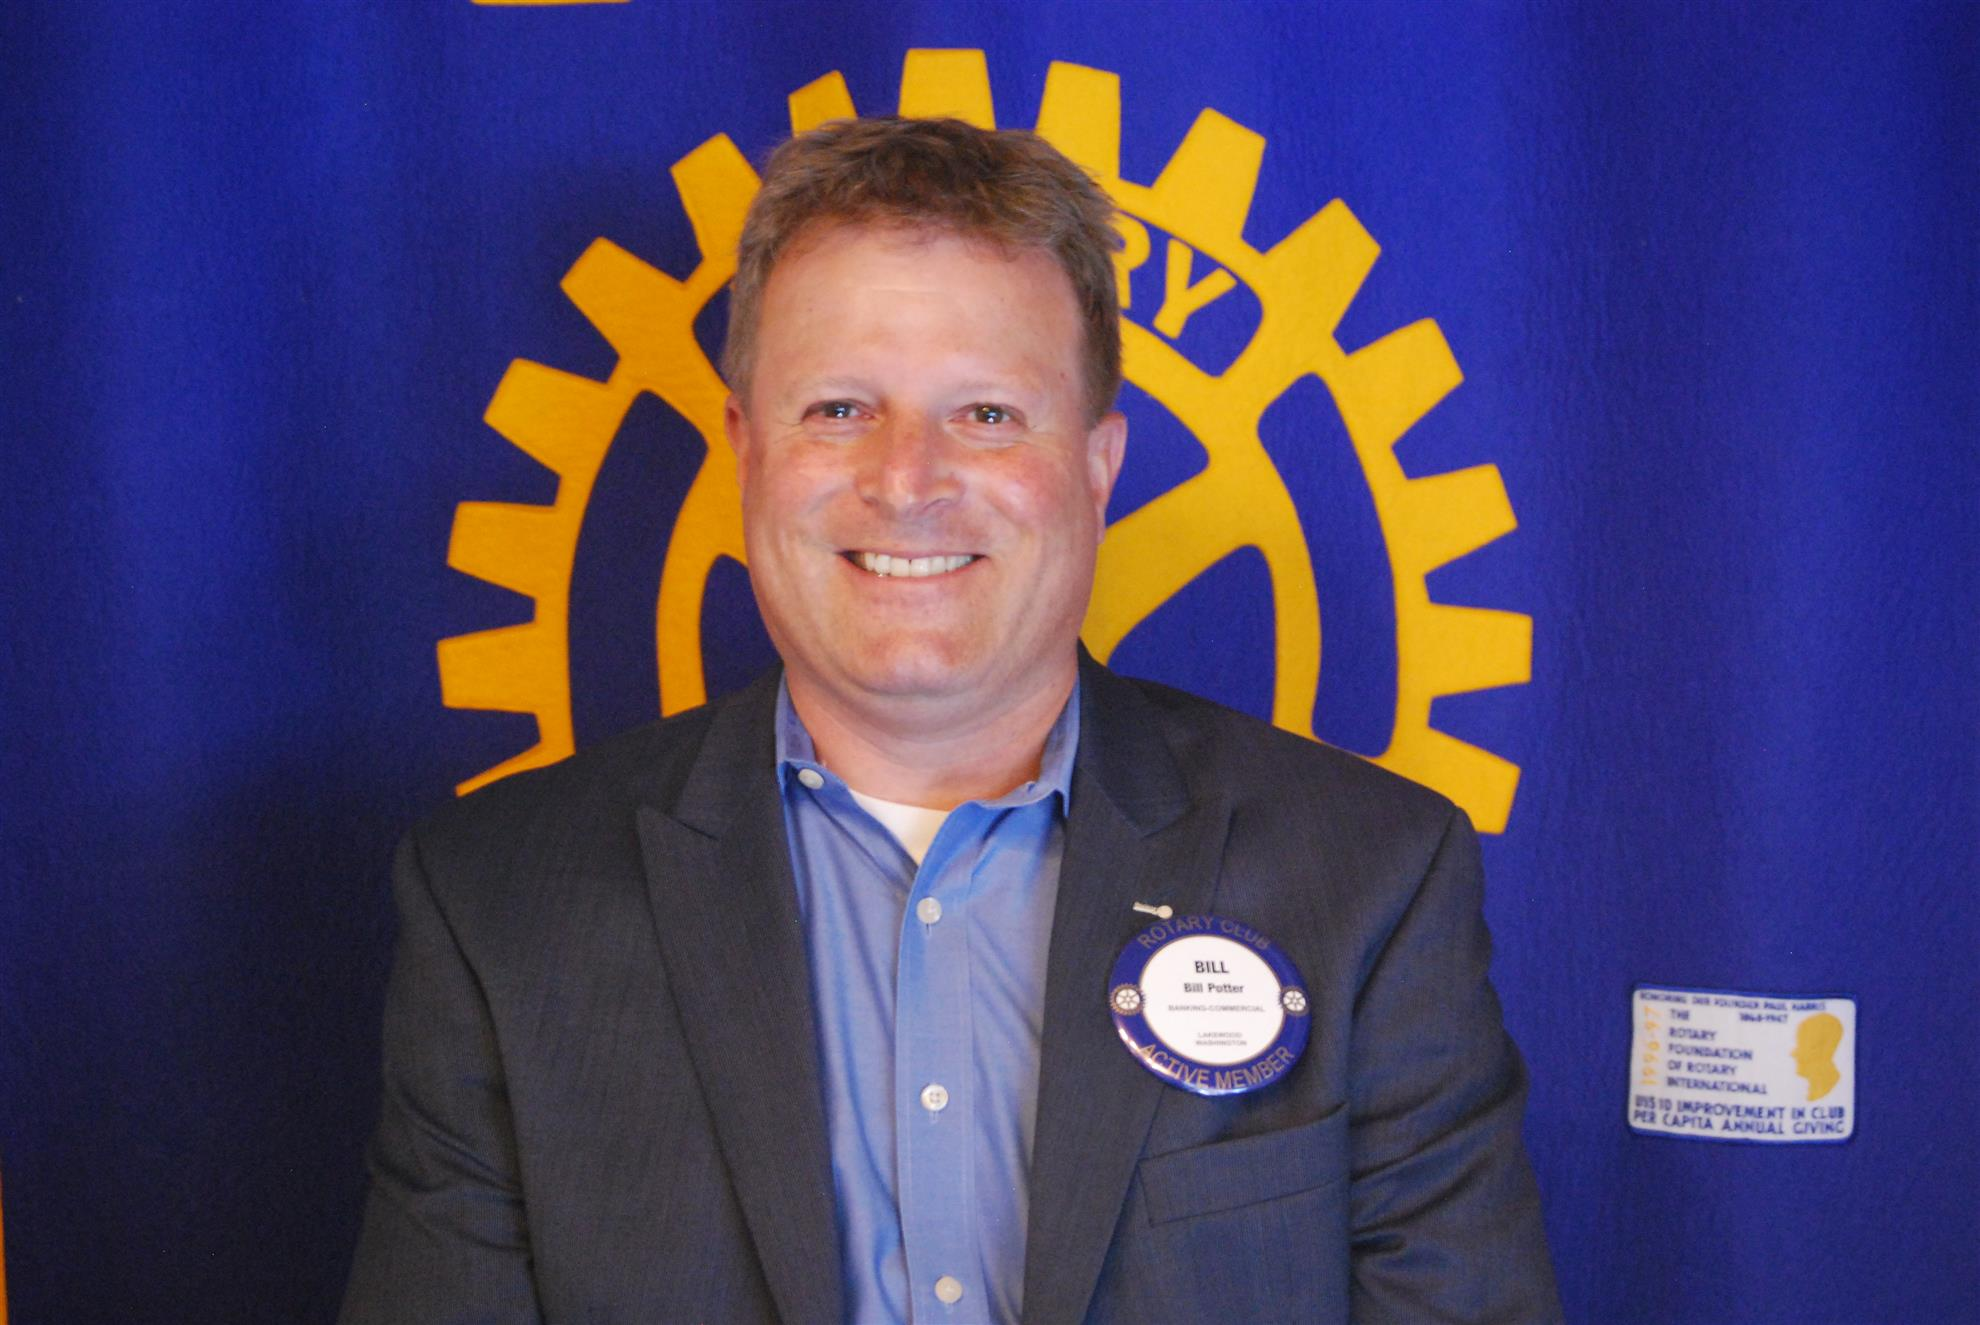 Stories | Rotary Club of Lakewood - WA